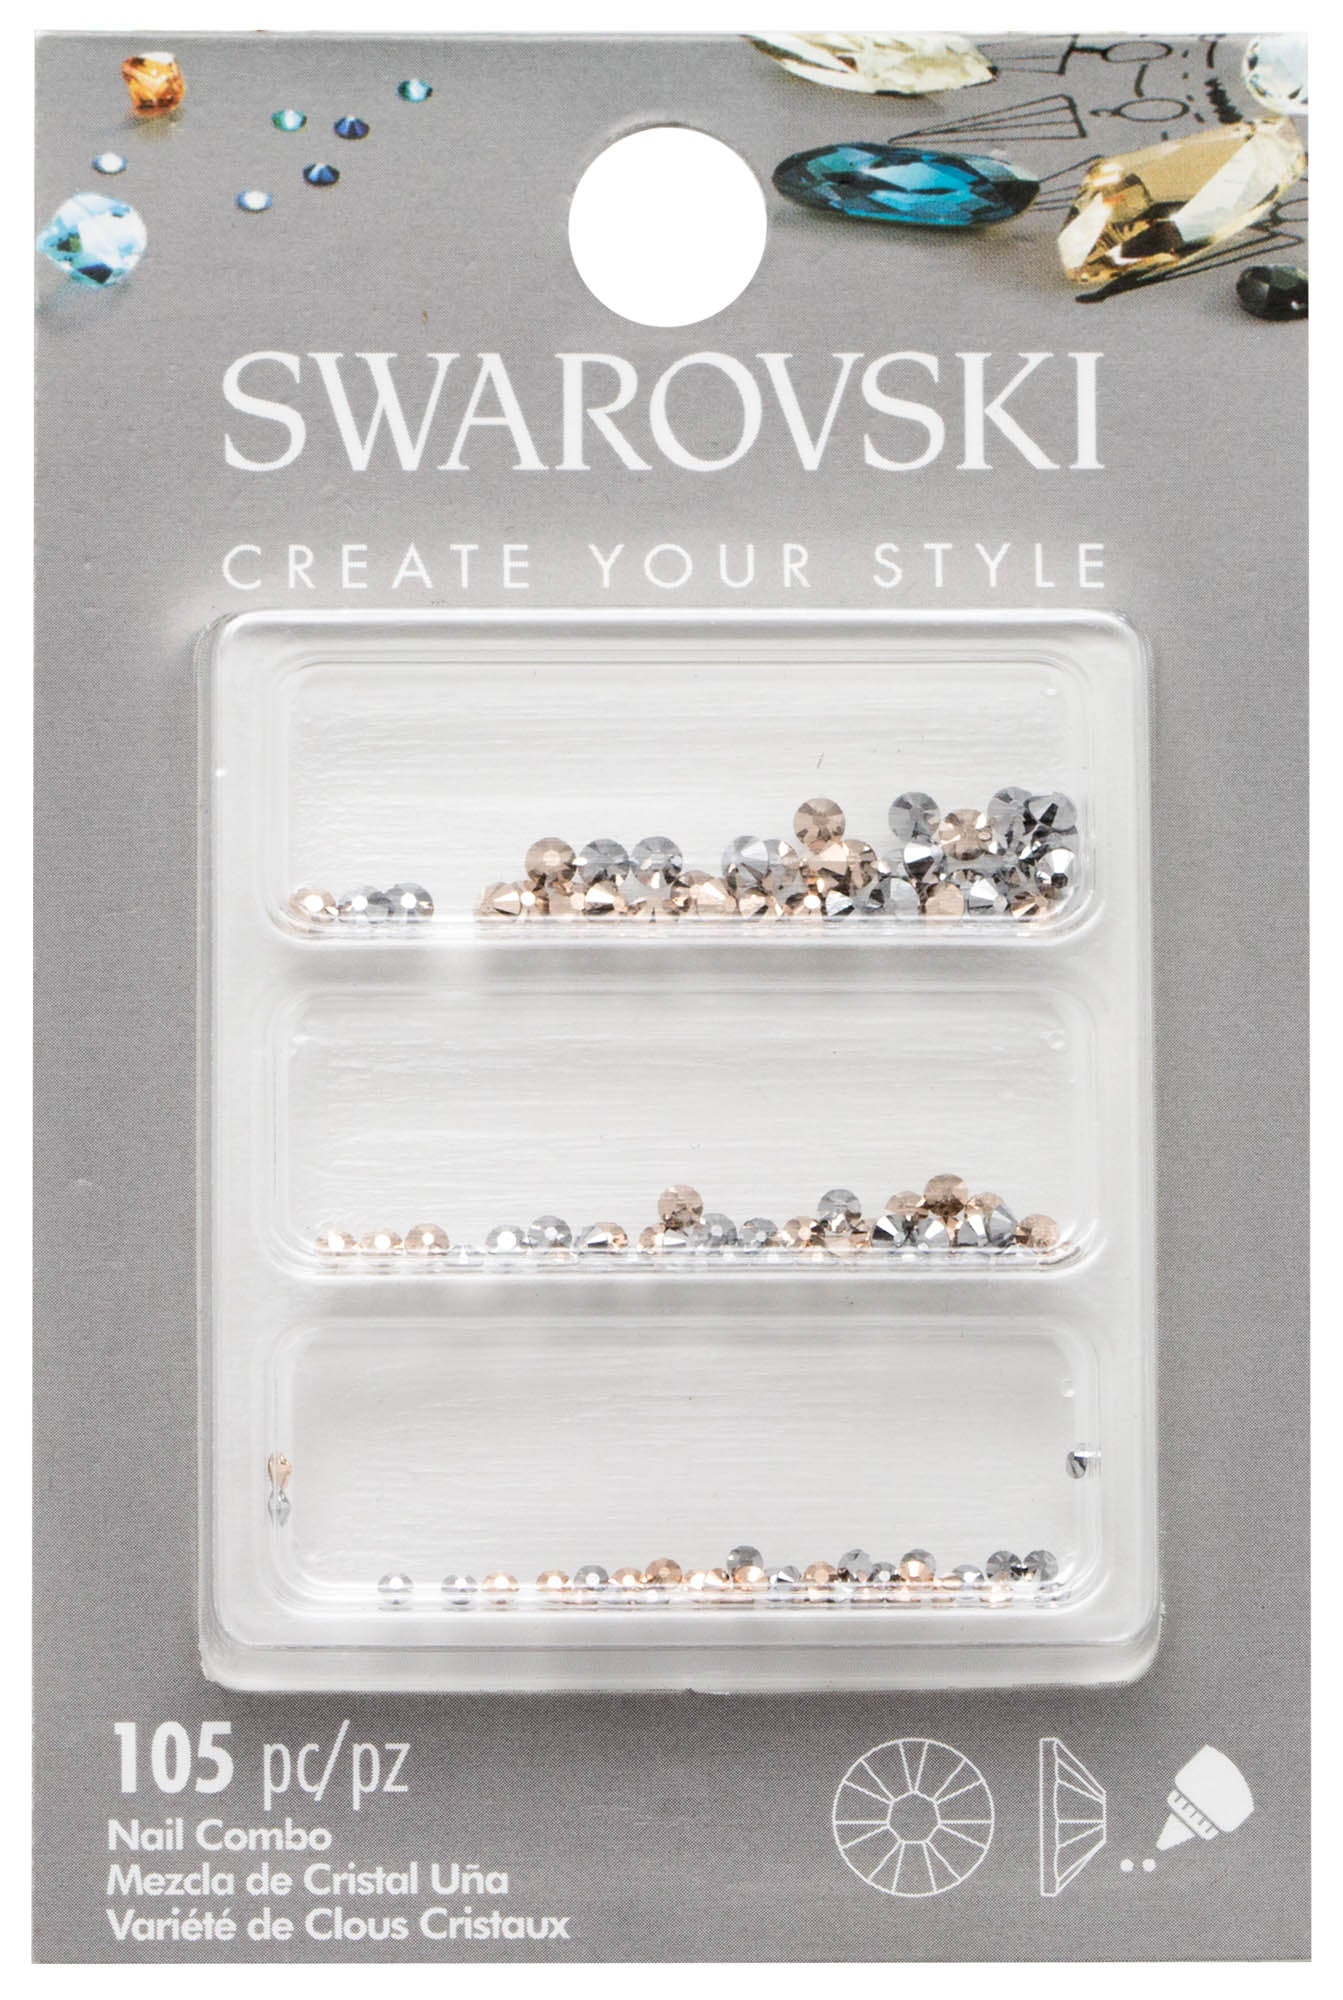 SWAROVSKI ROSE GOLD NAIL COMBO 105 PCS. - Nails Plus Depot